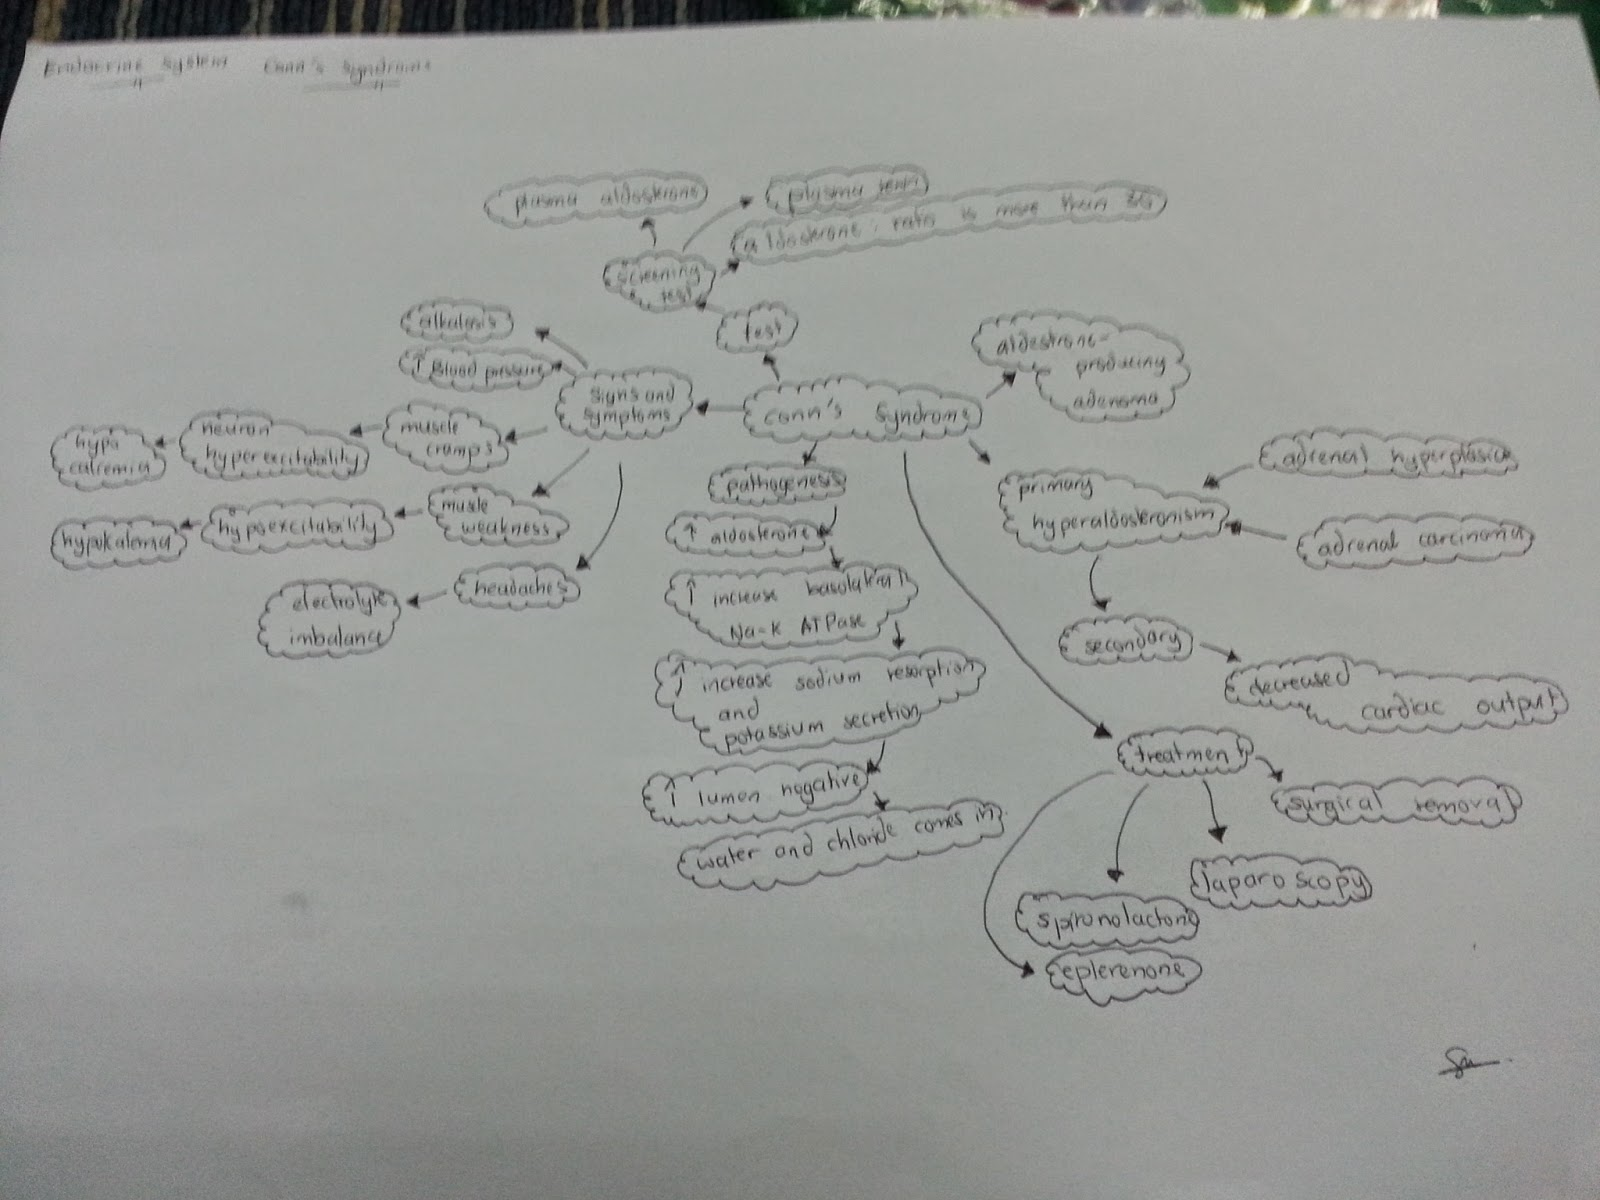 Medical Concept Maps Endocrine System